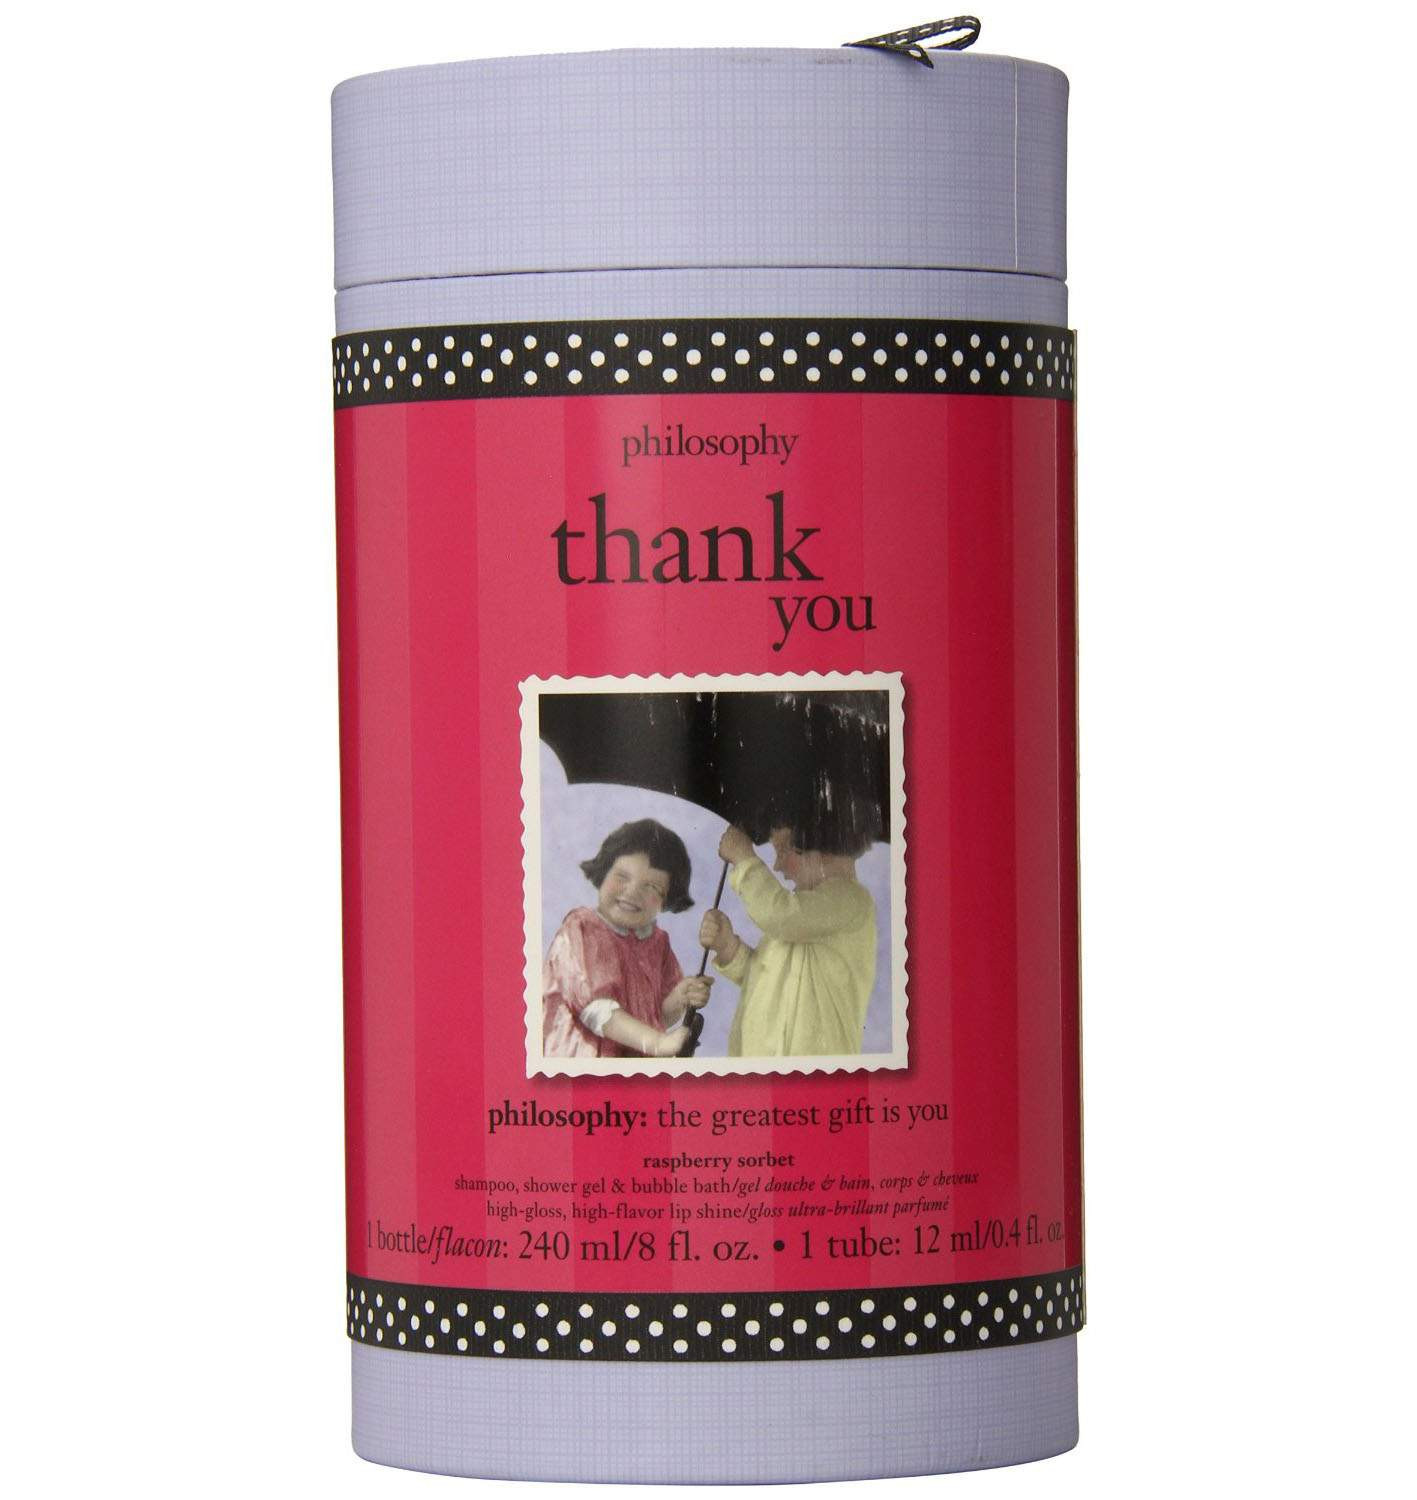 Thank You Gift Ideas For Women  Top 10 Best Thank You Gifts & Gift Ideas